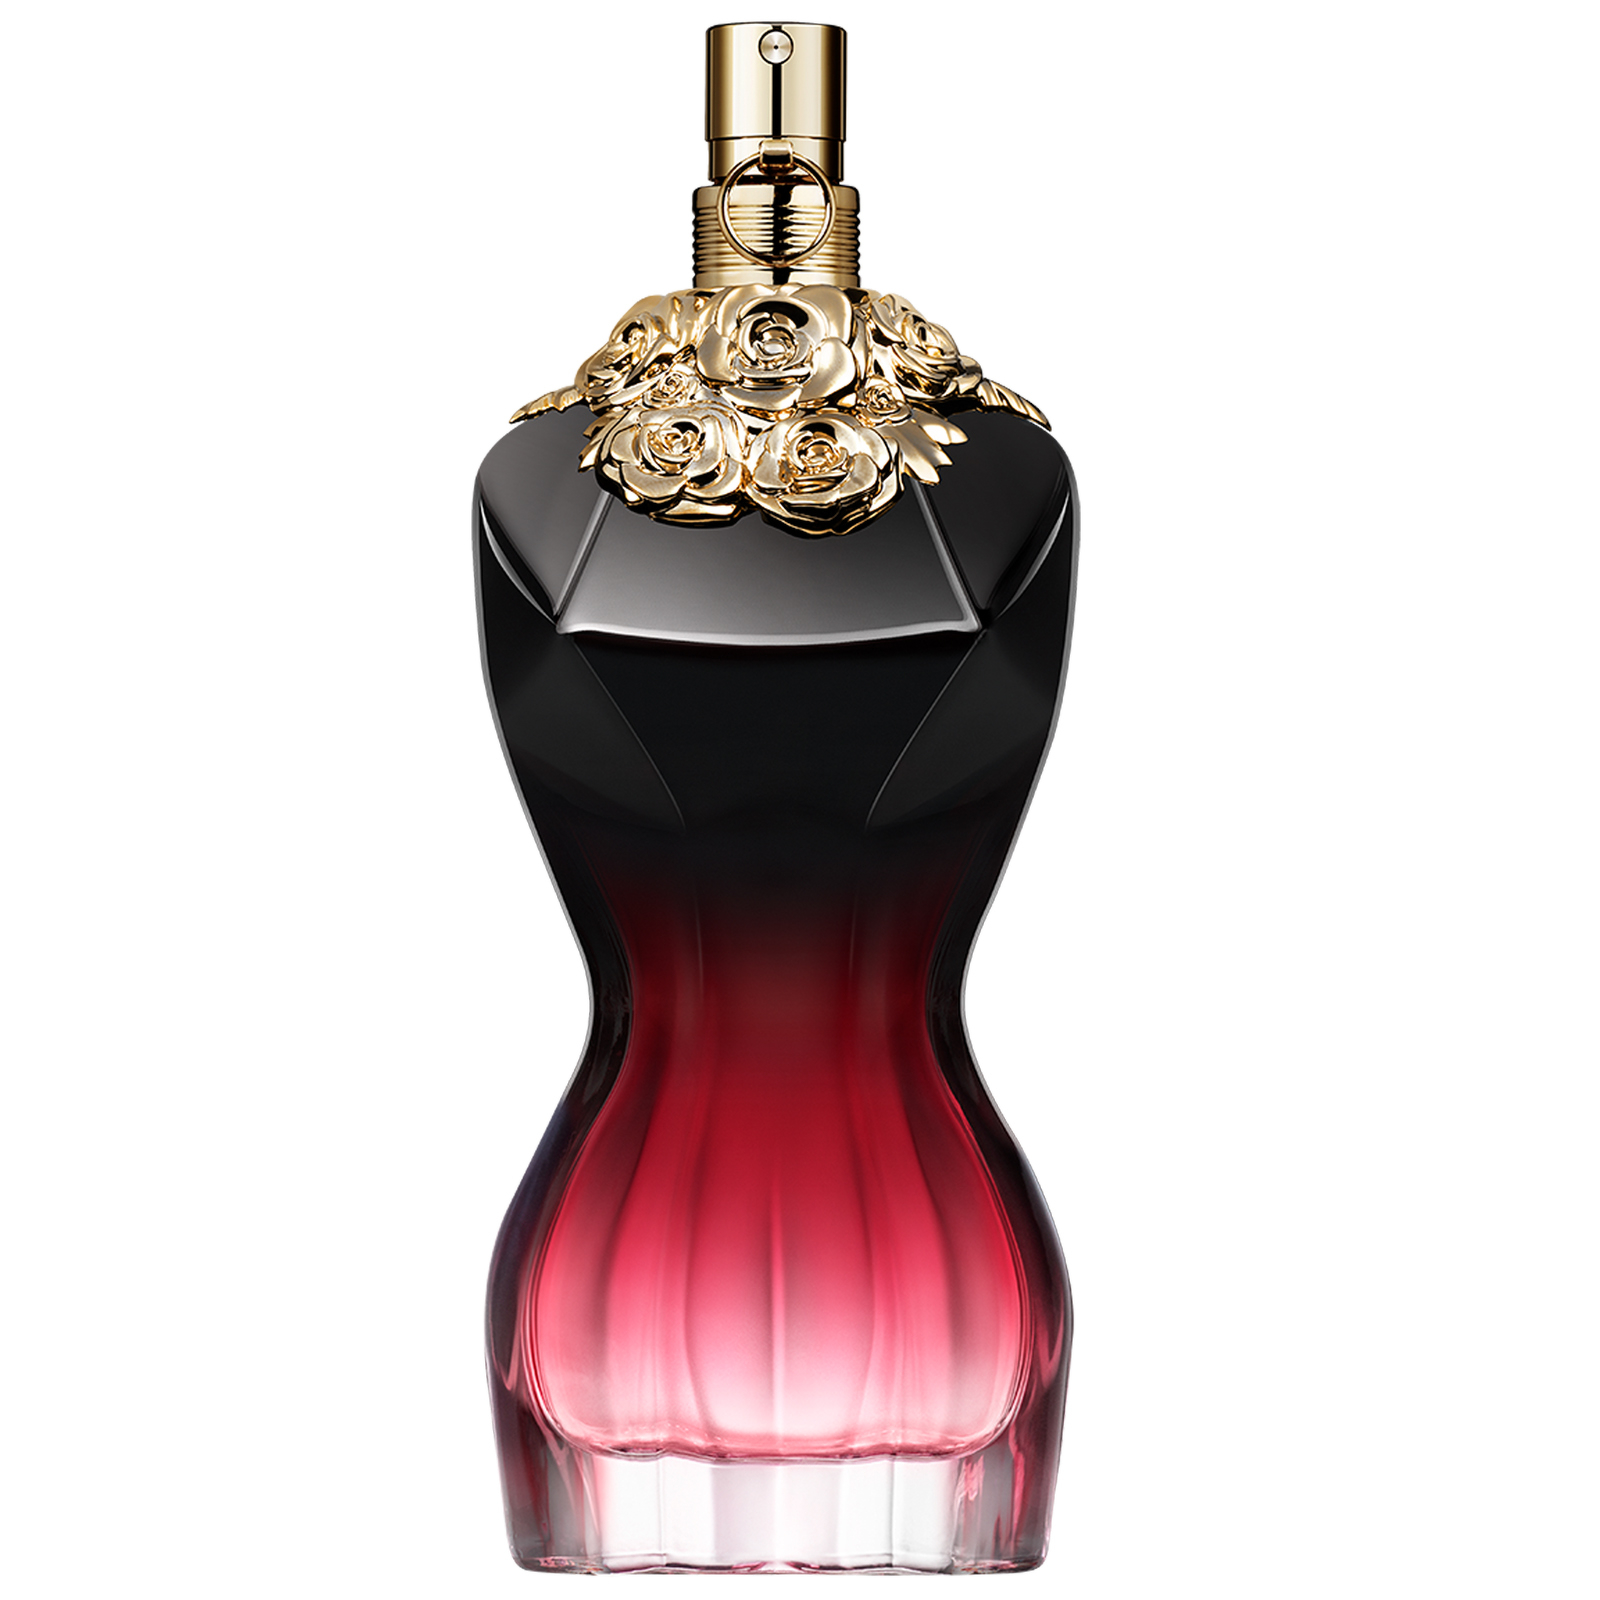 Jean Paul Gaultier La Belle Le Parfum Spray 100ml (Launch 19.05.21)